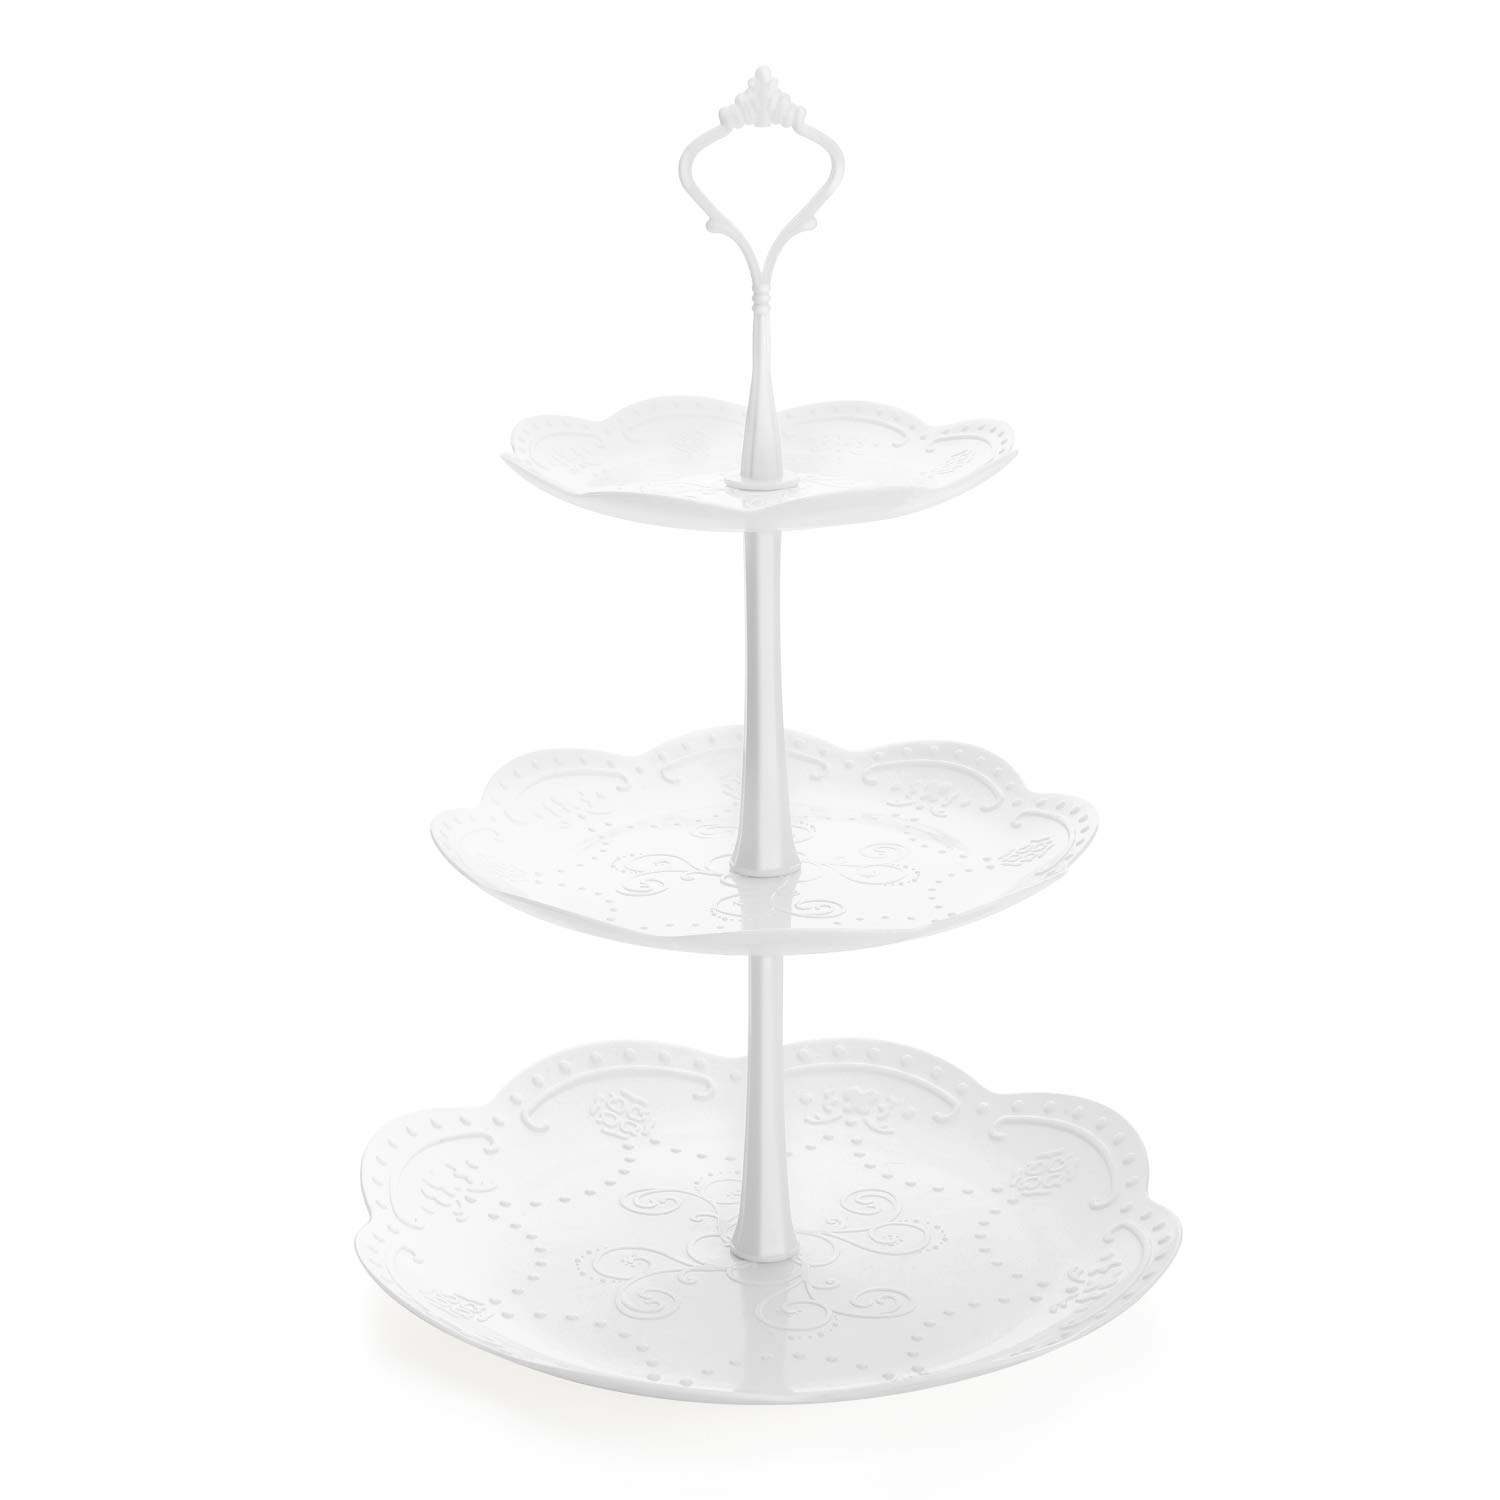 Stainless Steel VonShef 3 Tier Cake Stand Party To Display Cupcakes Muffins Cakes Wedding